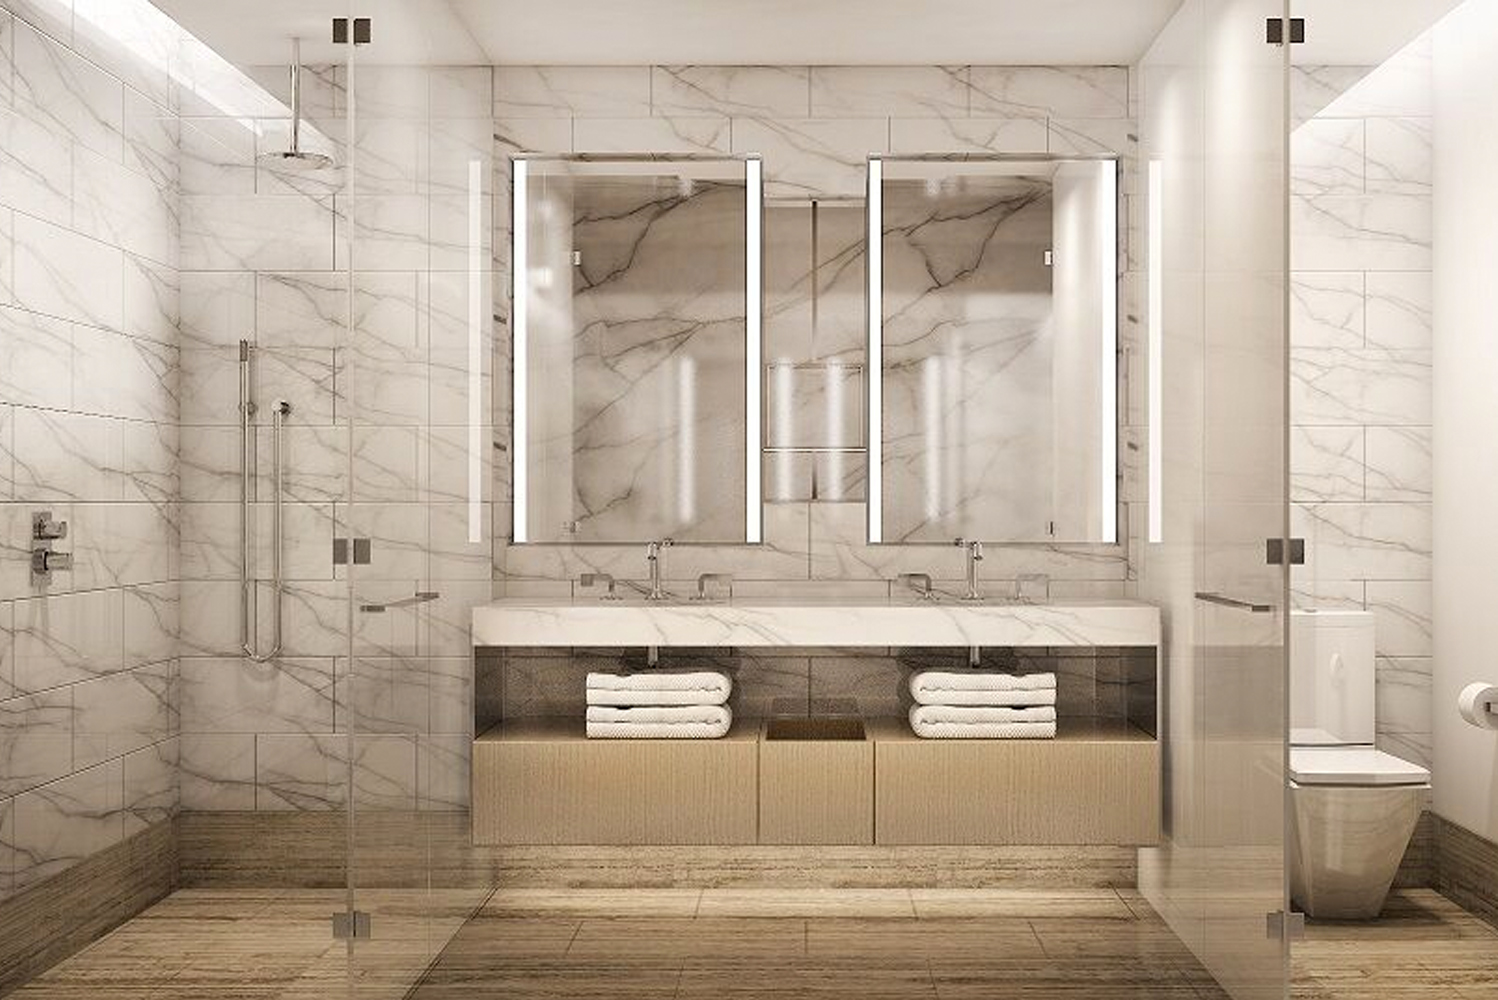 The hotel's concept was envisioned by Swiss architecture firm Herzog & de Meuron.